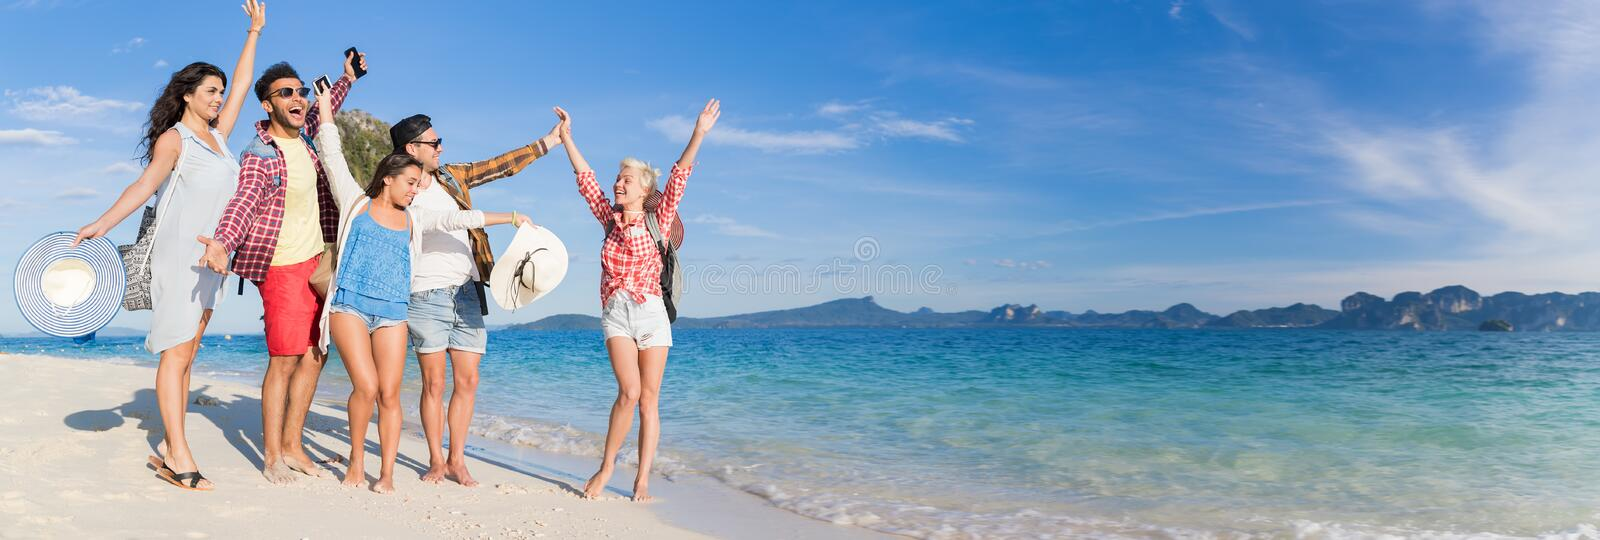 Young People Group On Beach Summer Vacation, Happy Smiling Friends Walking Seaside stock photography